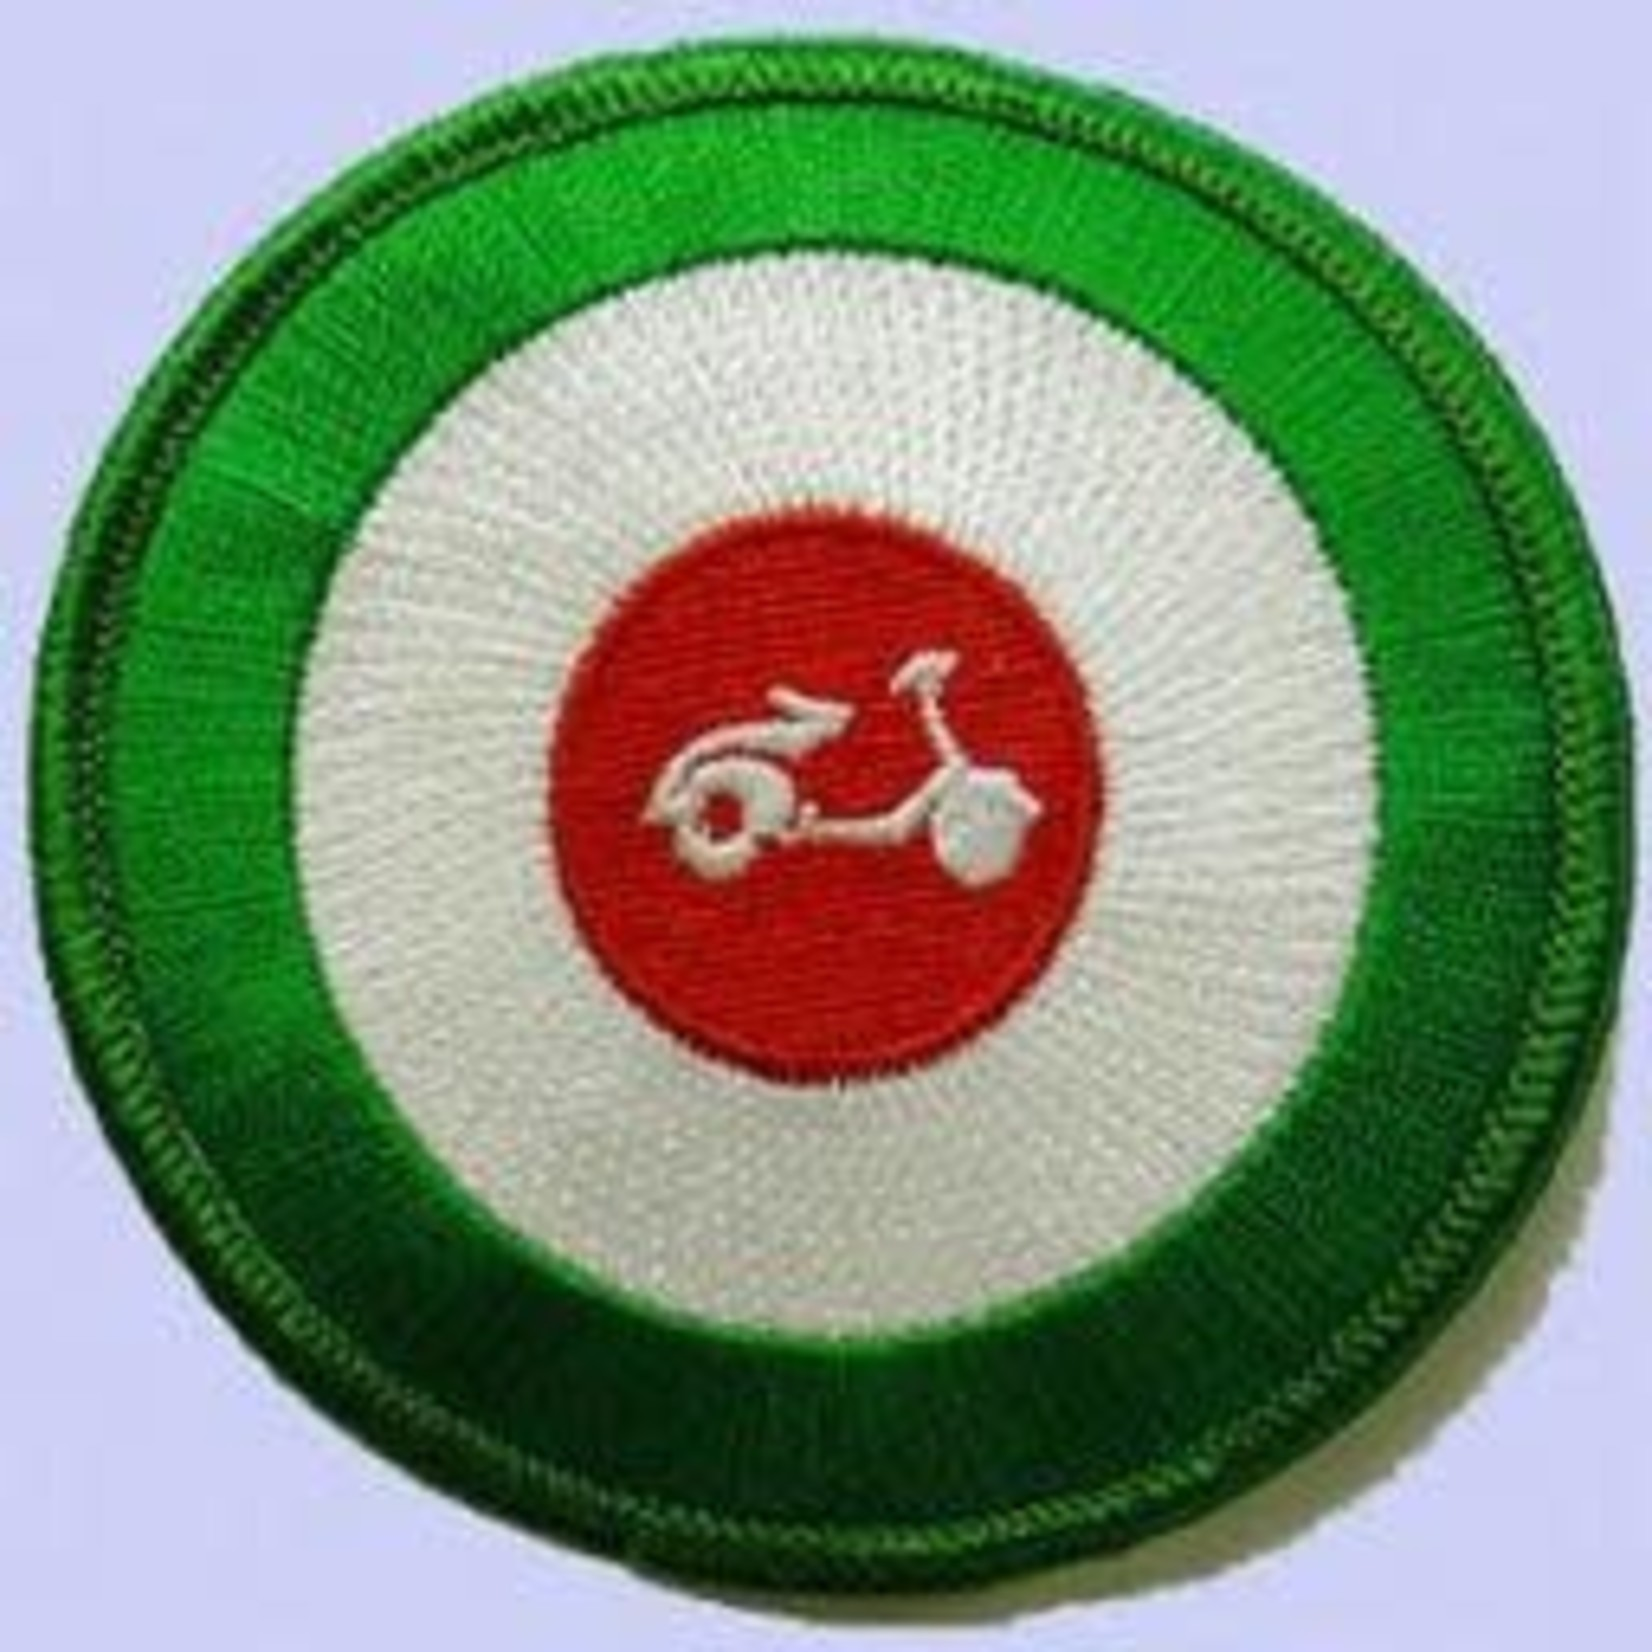 Lifestyle Patch, Scooter Target Italian RWG